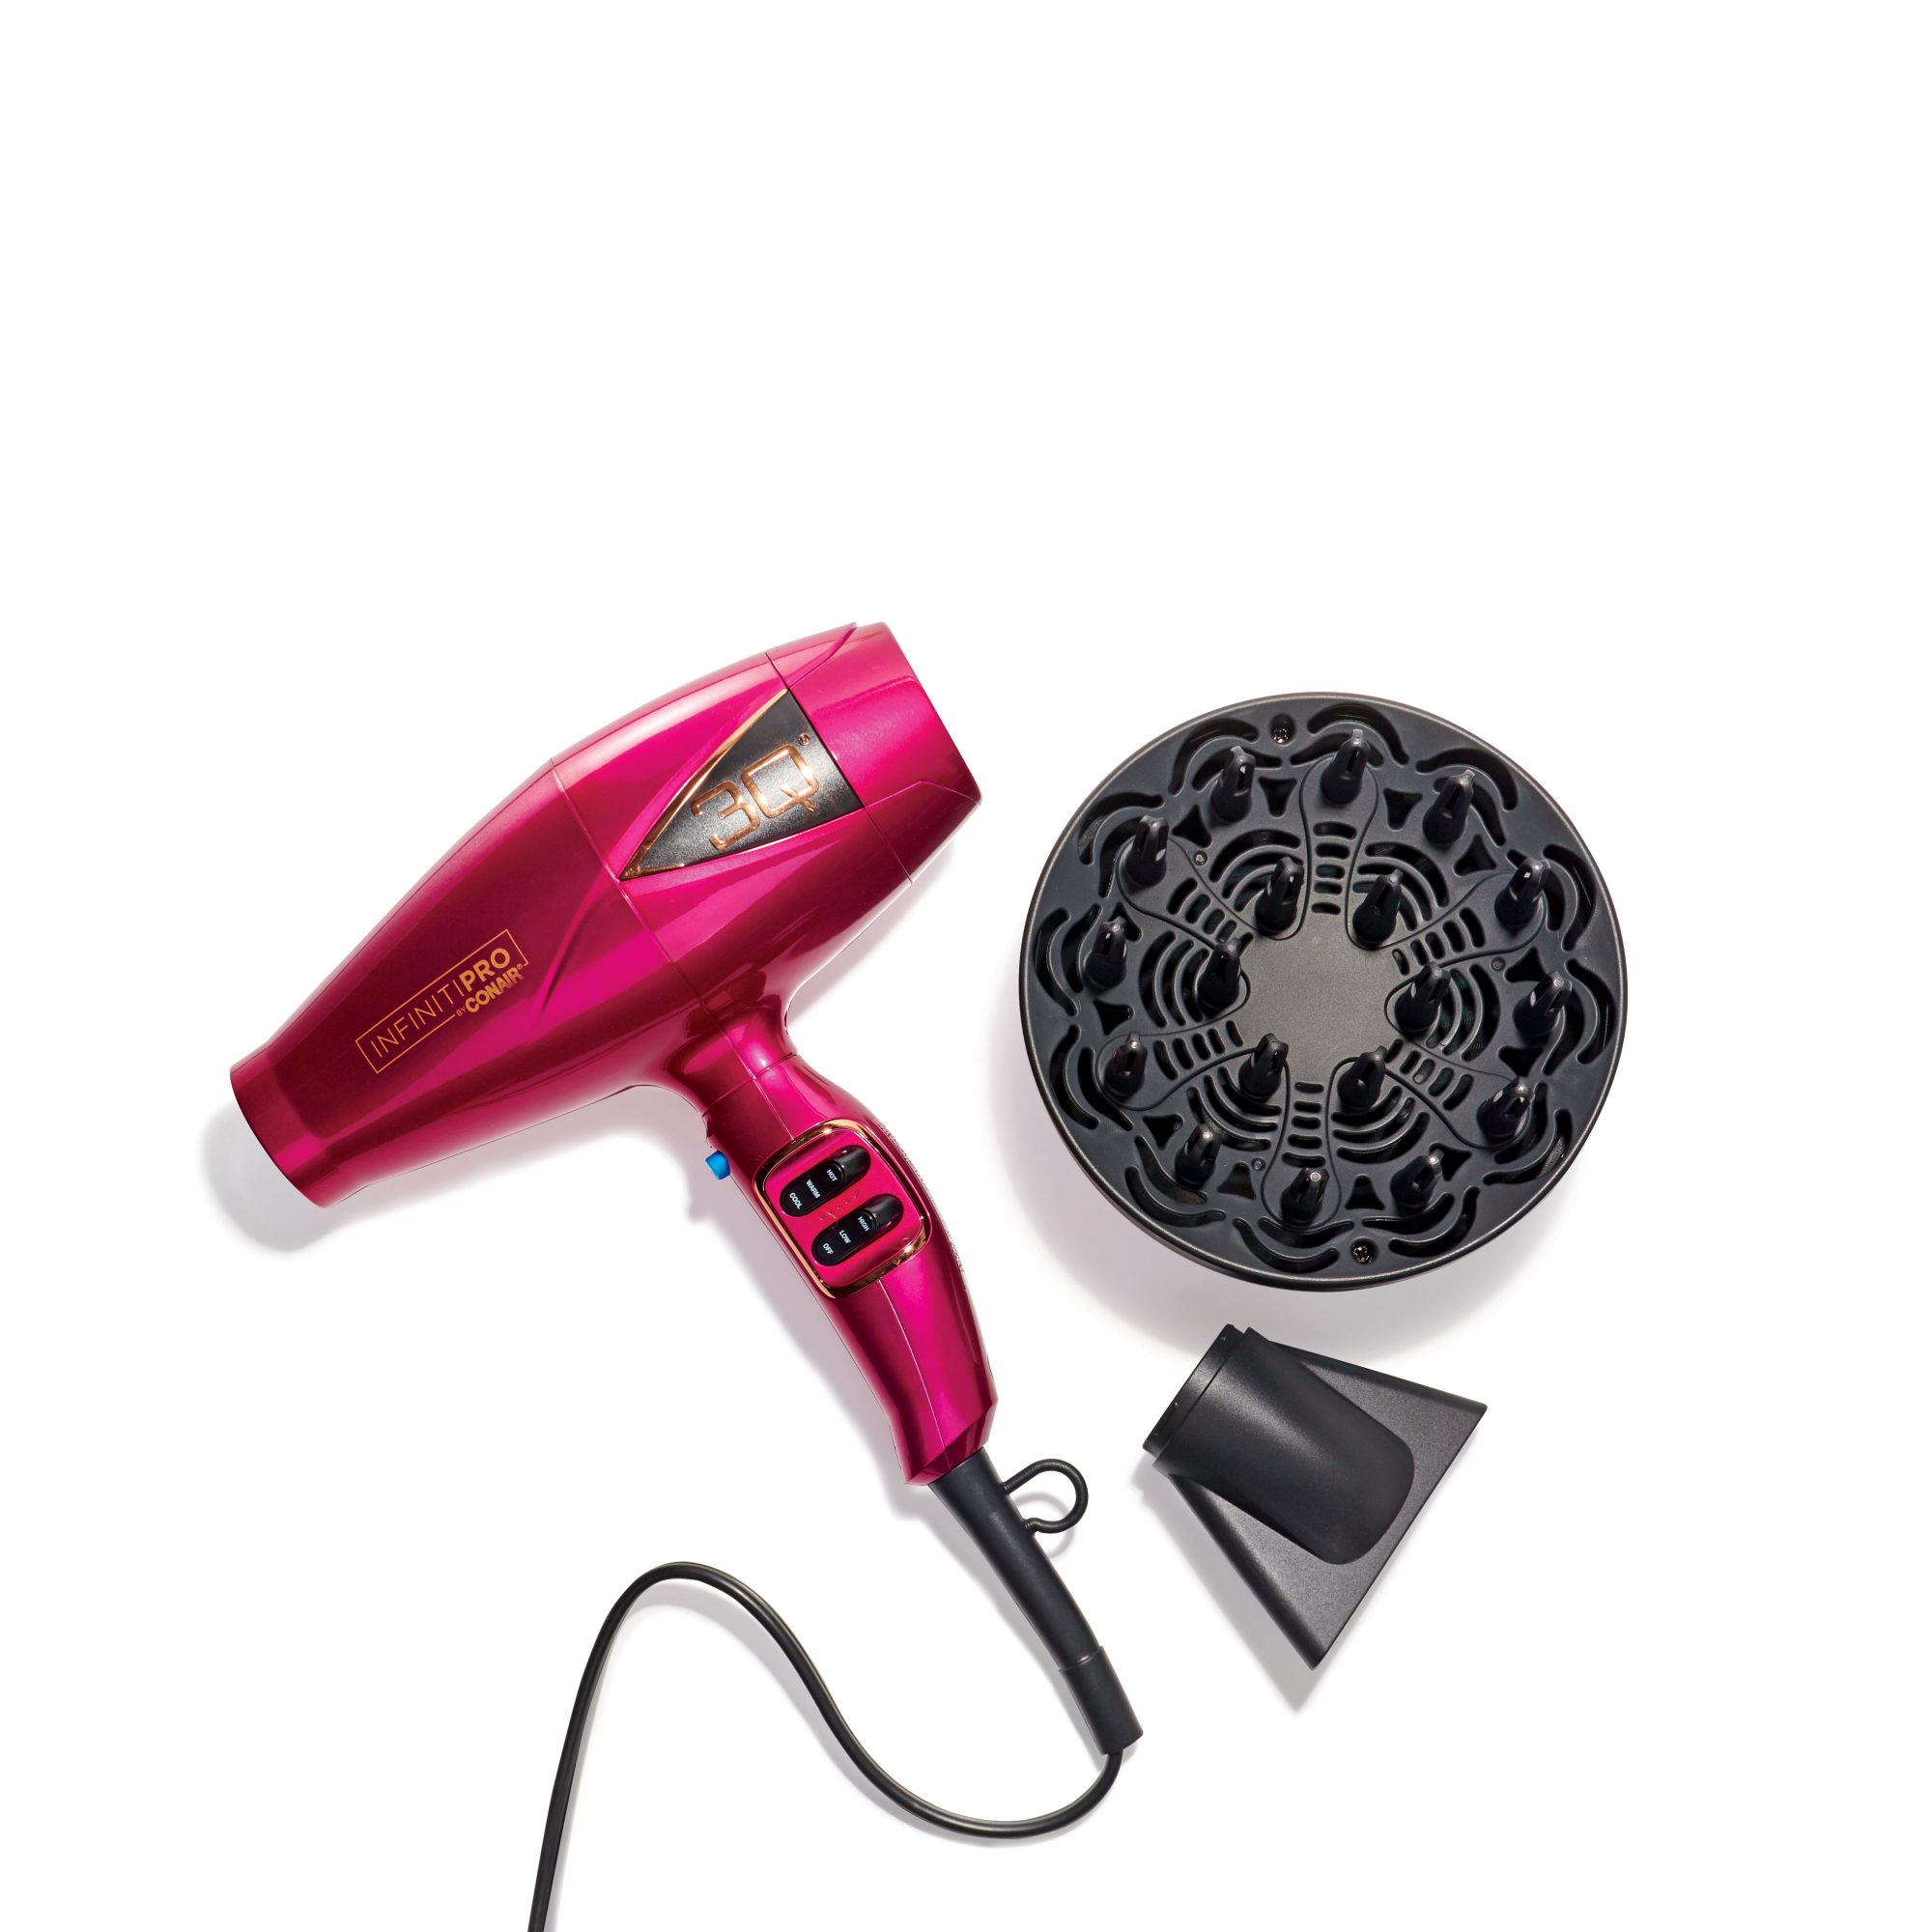 Conair 3QMS Hair Dryer